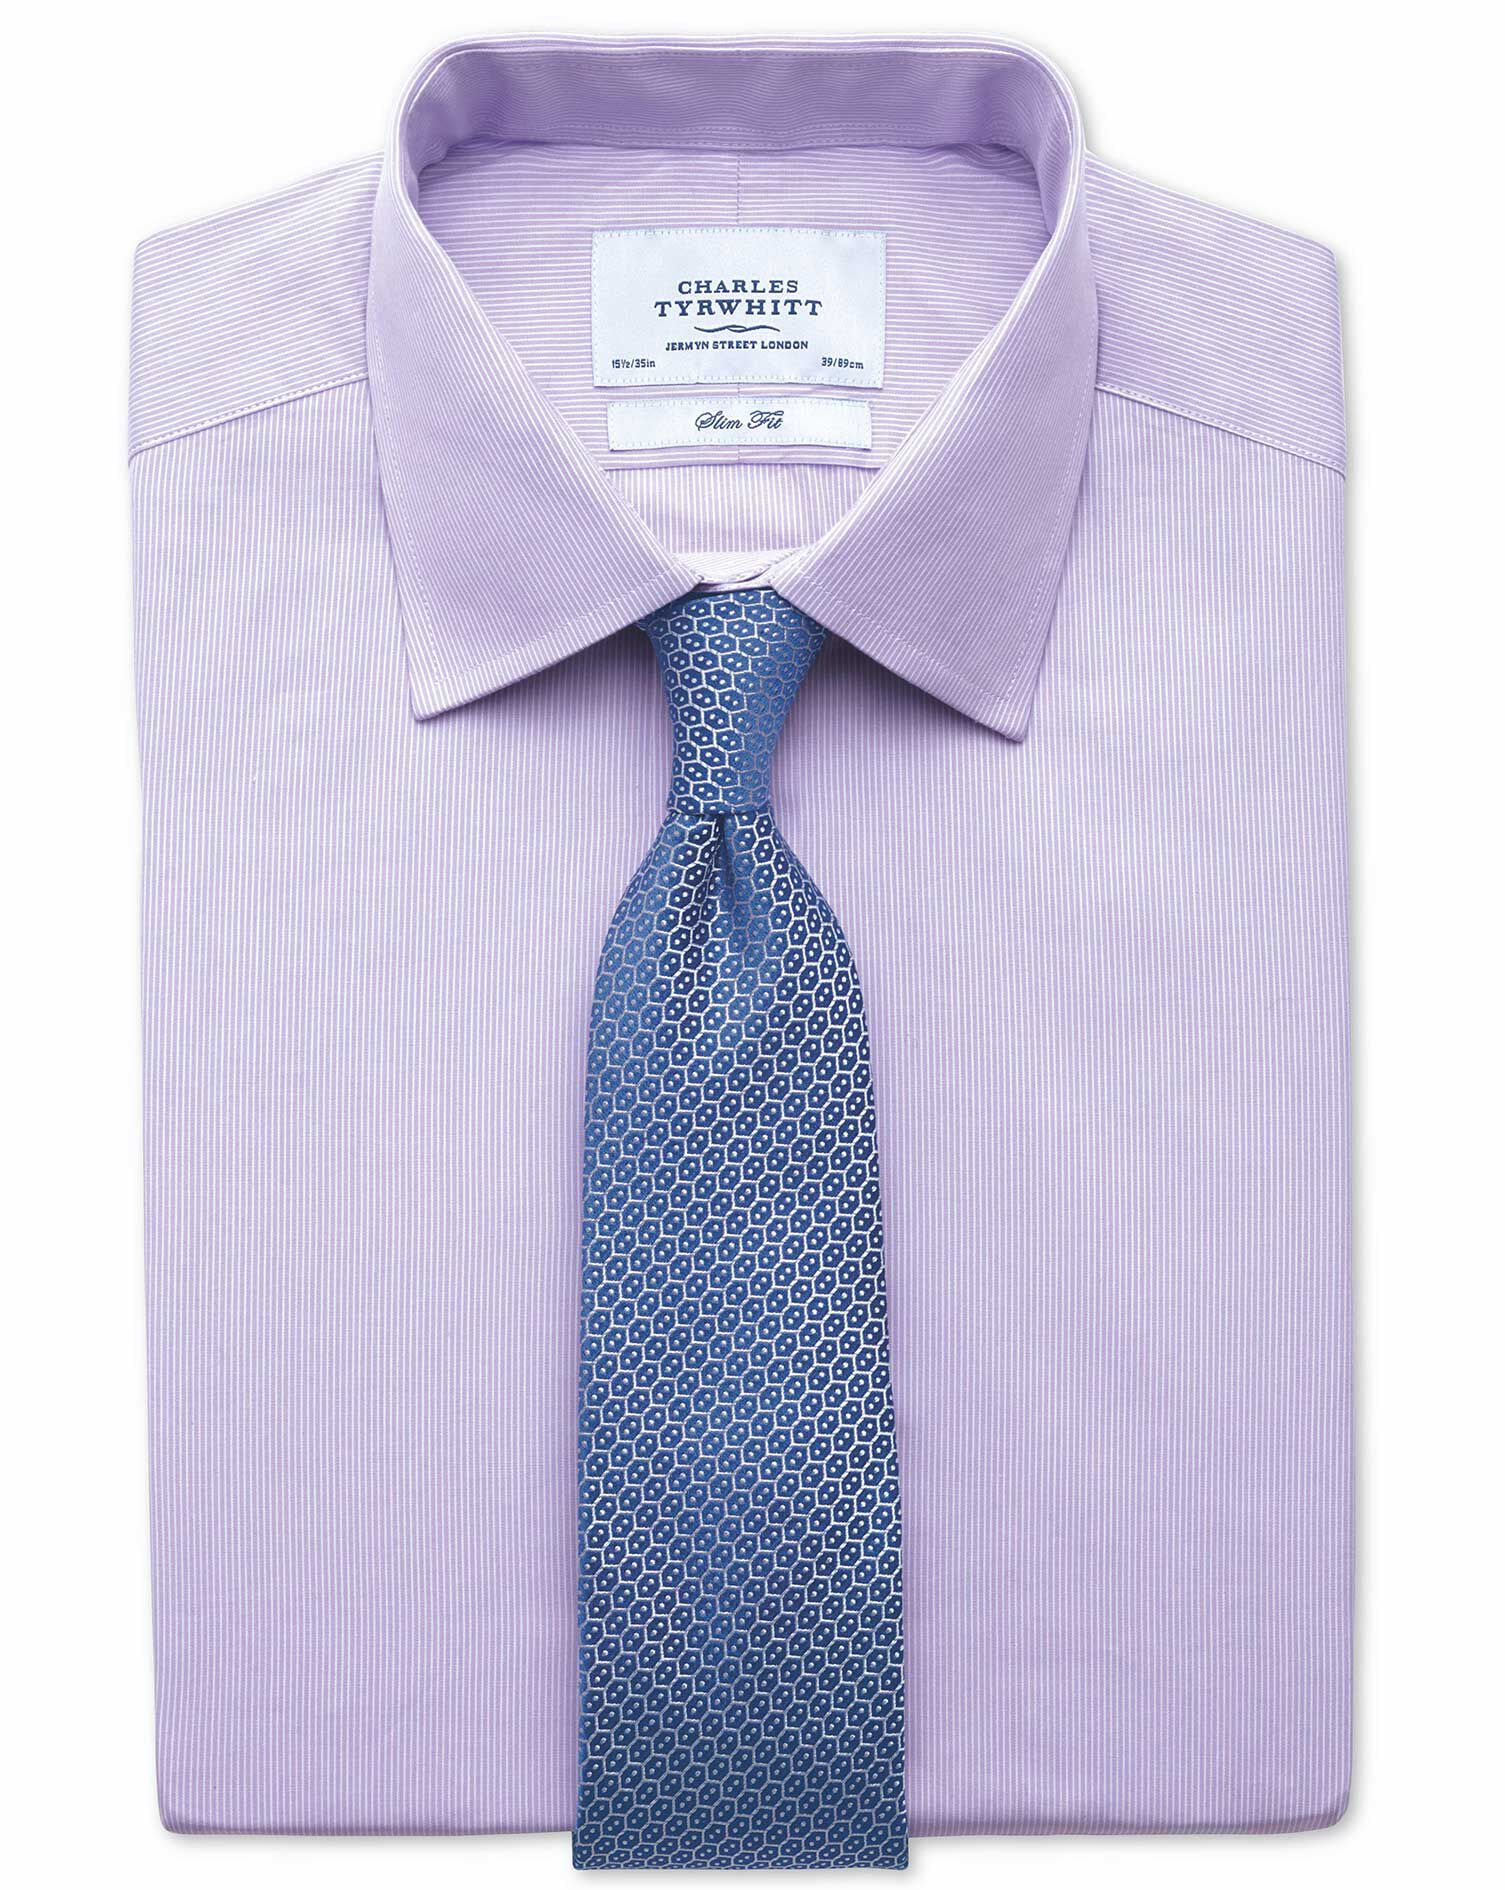 Slim Fit Fine Stripe Lilac Cotton Formal Shirt Double Cuff Size 17/35 by Charles Tyrwhitt